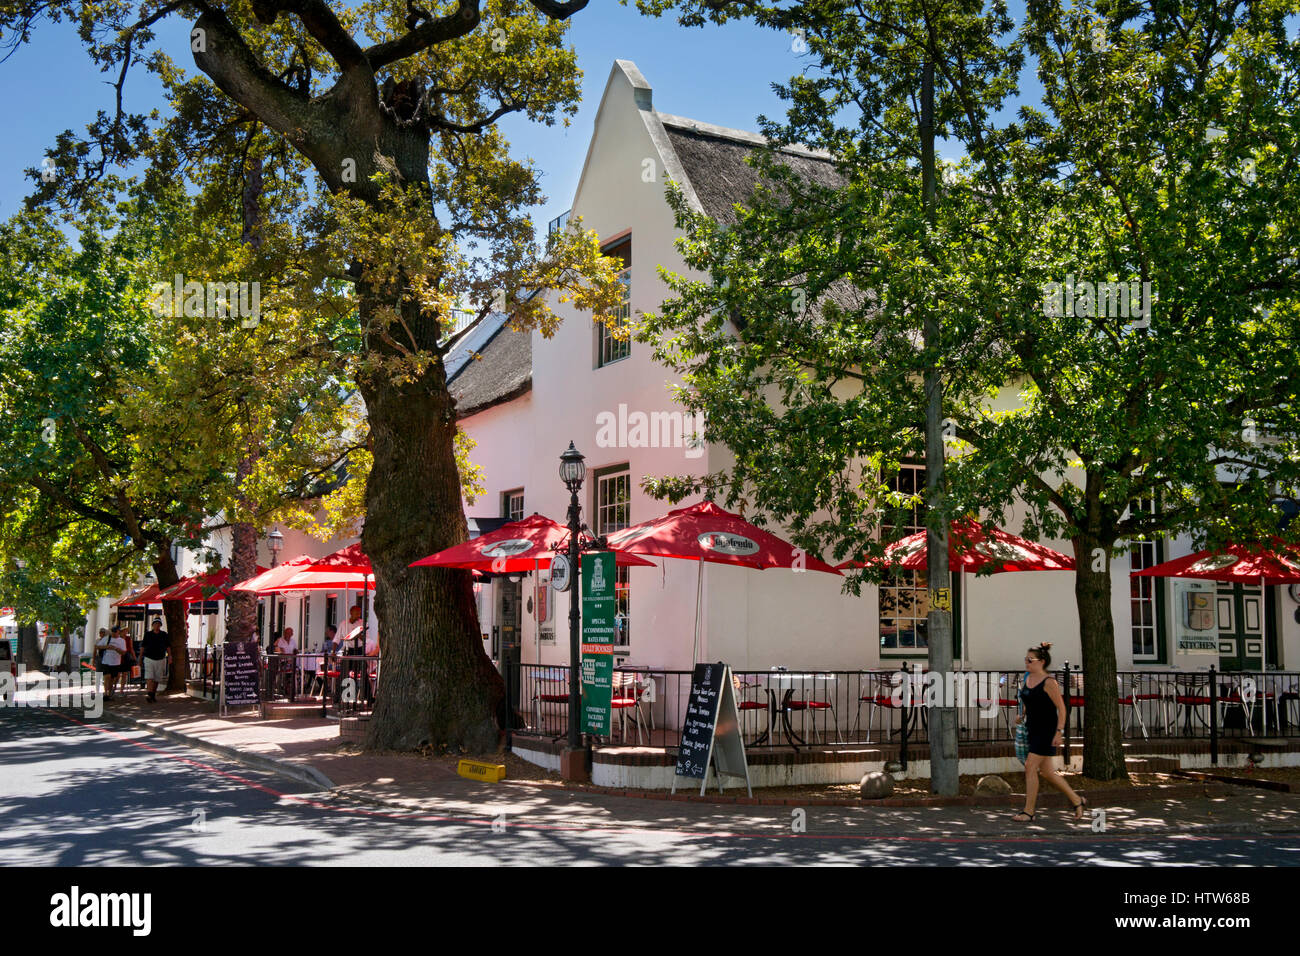 Stellenbosch,Western Cape,South Africa - Stock Image